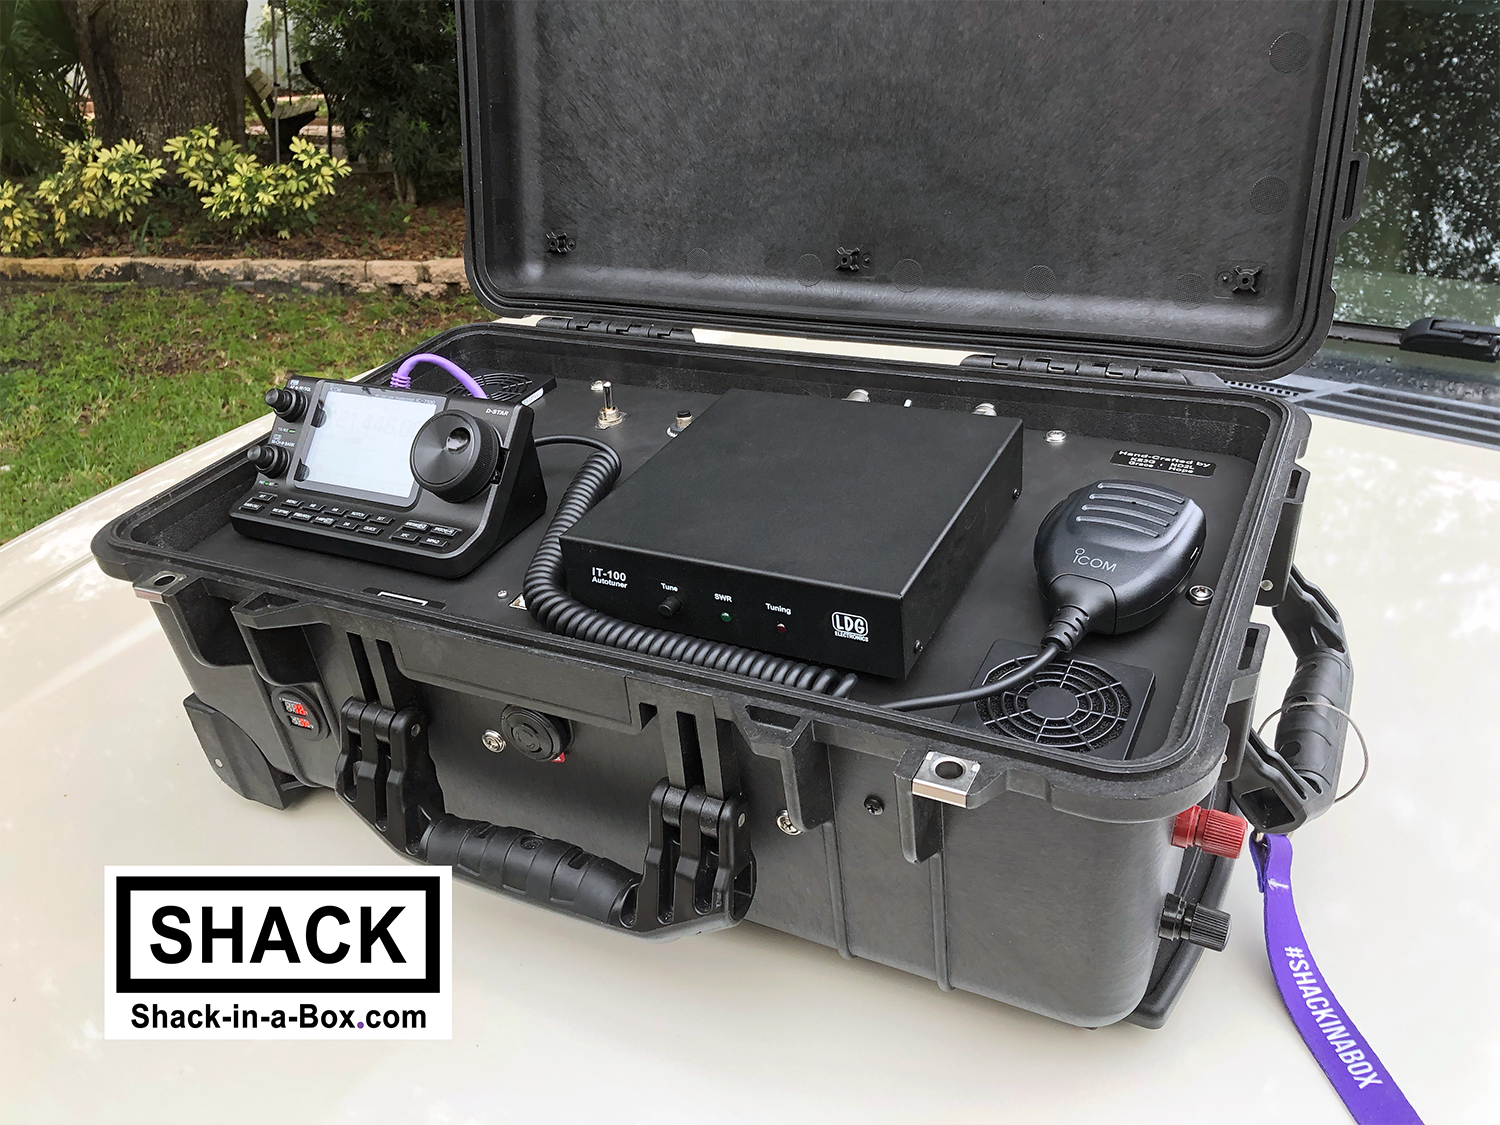 Shack-in-a-Box HF/VHF/UHF All-in-One with Yaesu FT-991A and FTM400XDR